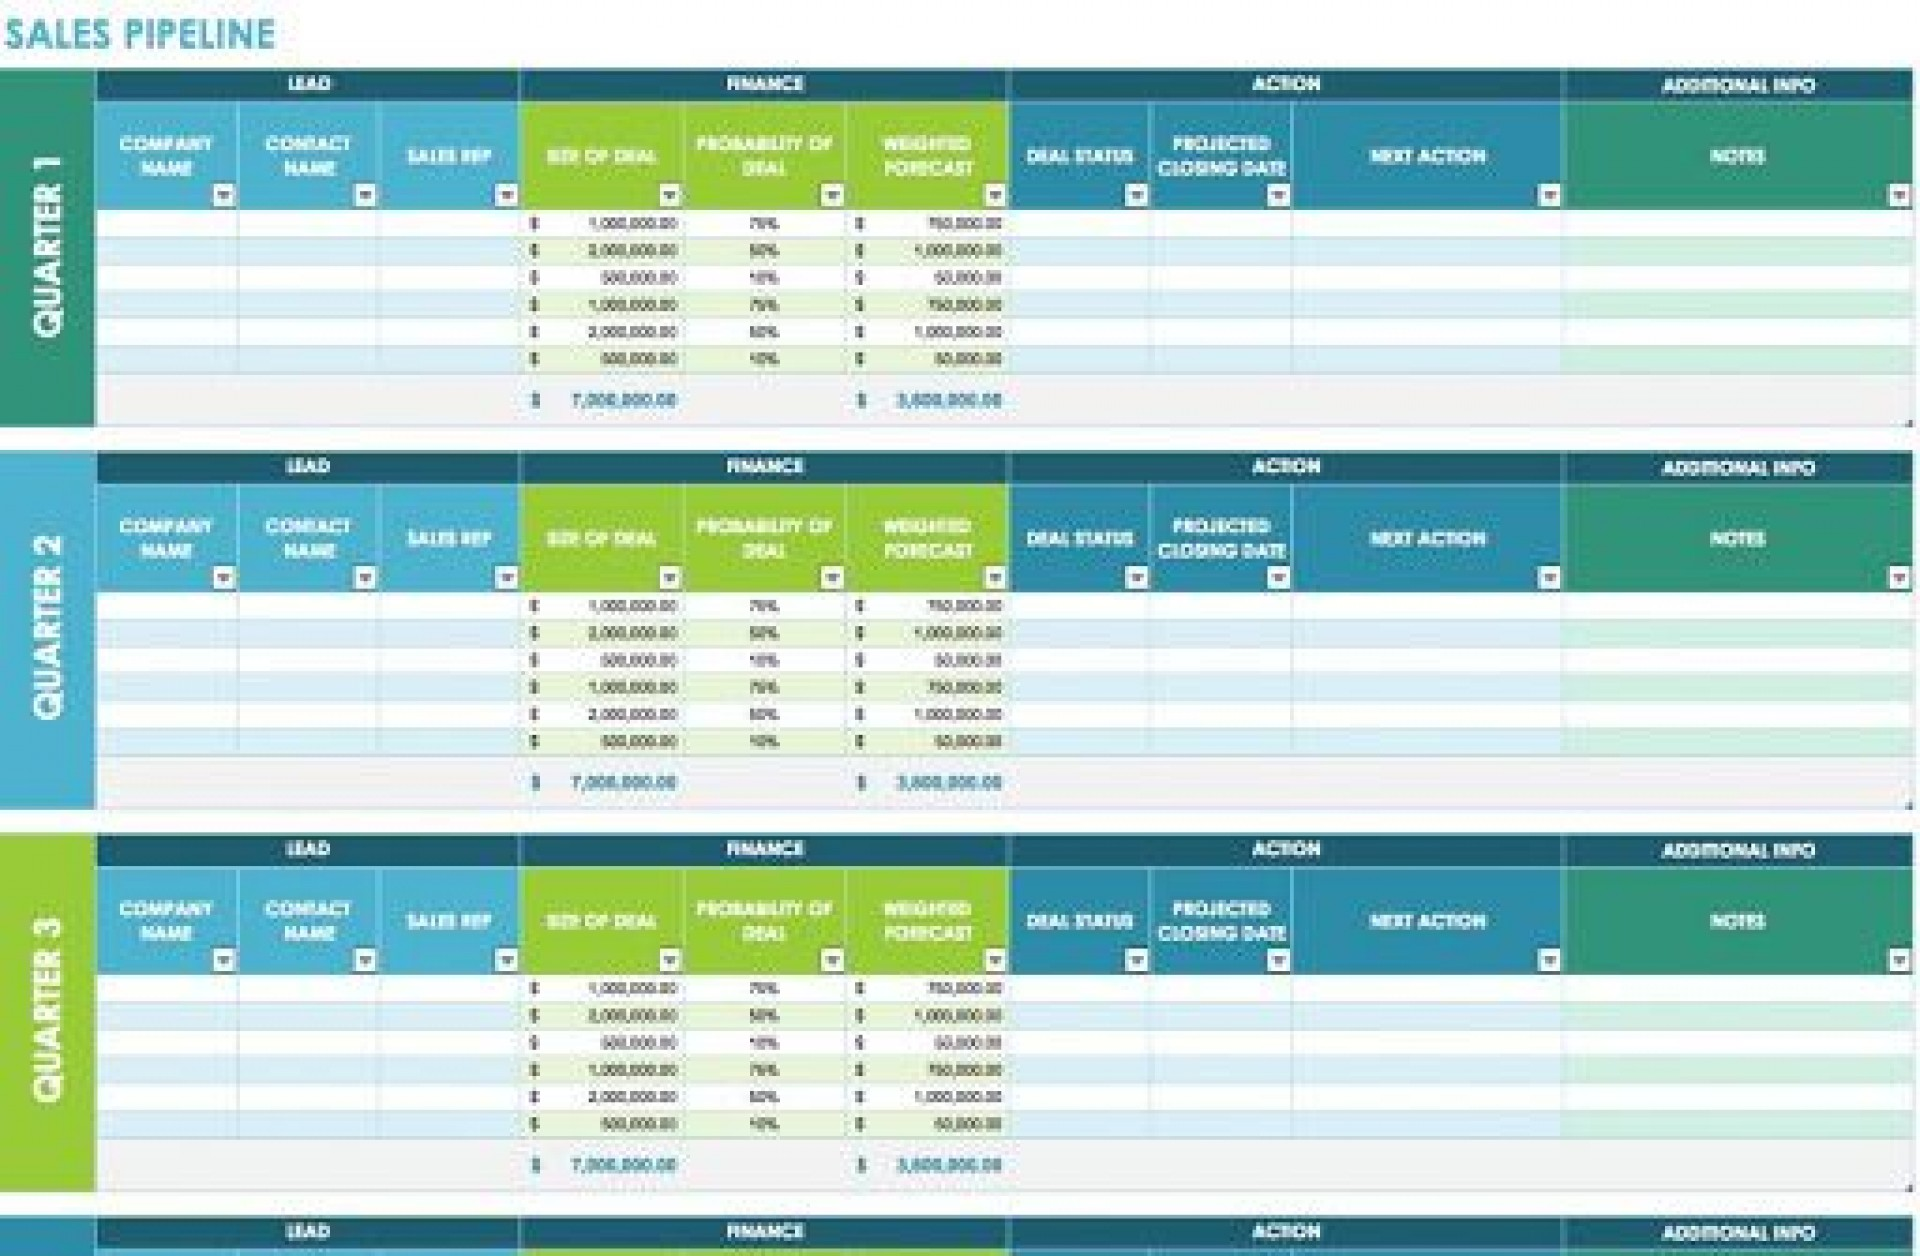 009 Remarkable Free Word Project Management Tracking Template Highest Quality  Templates1920